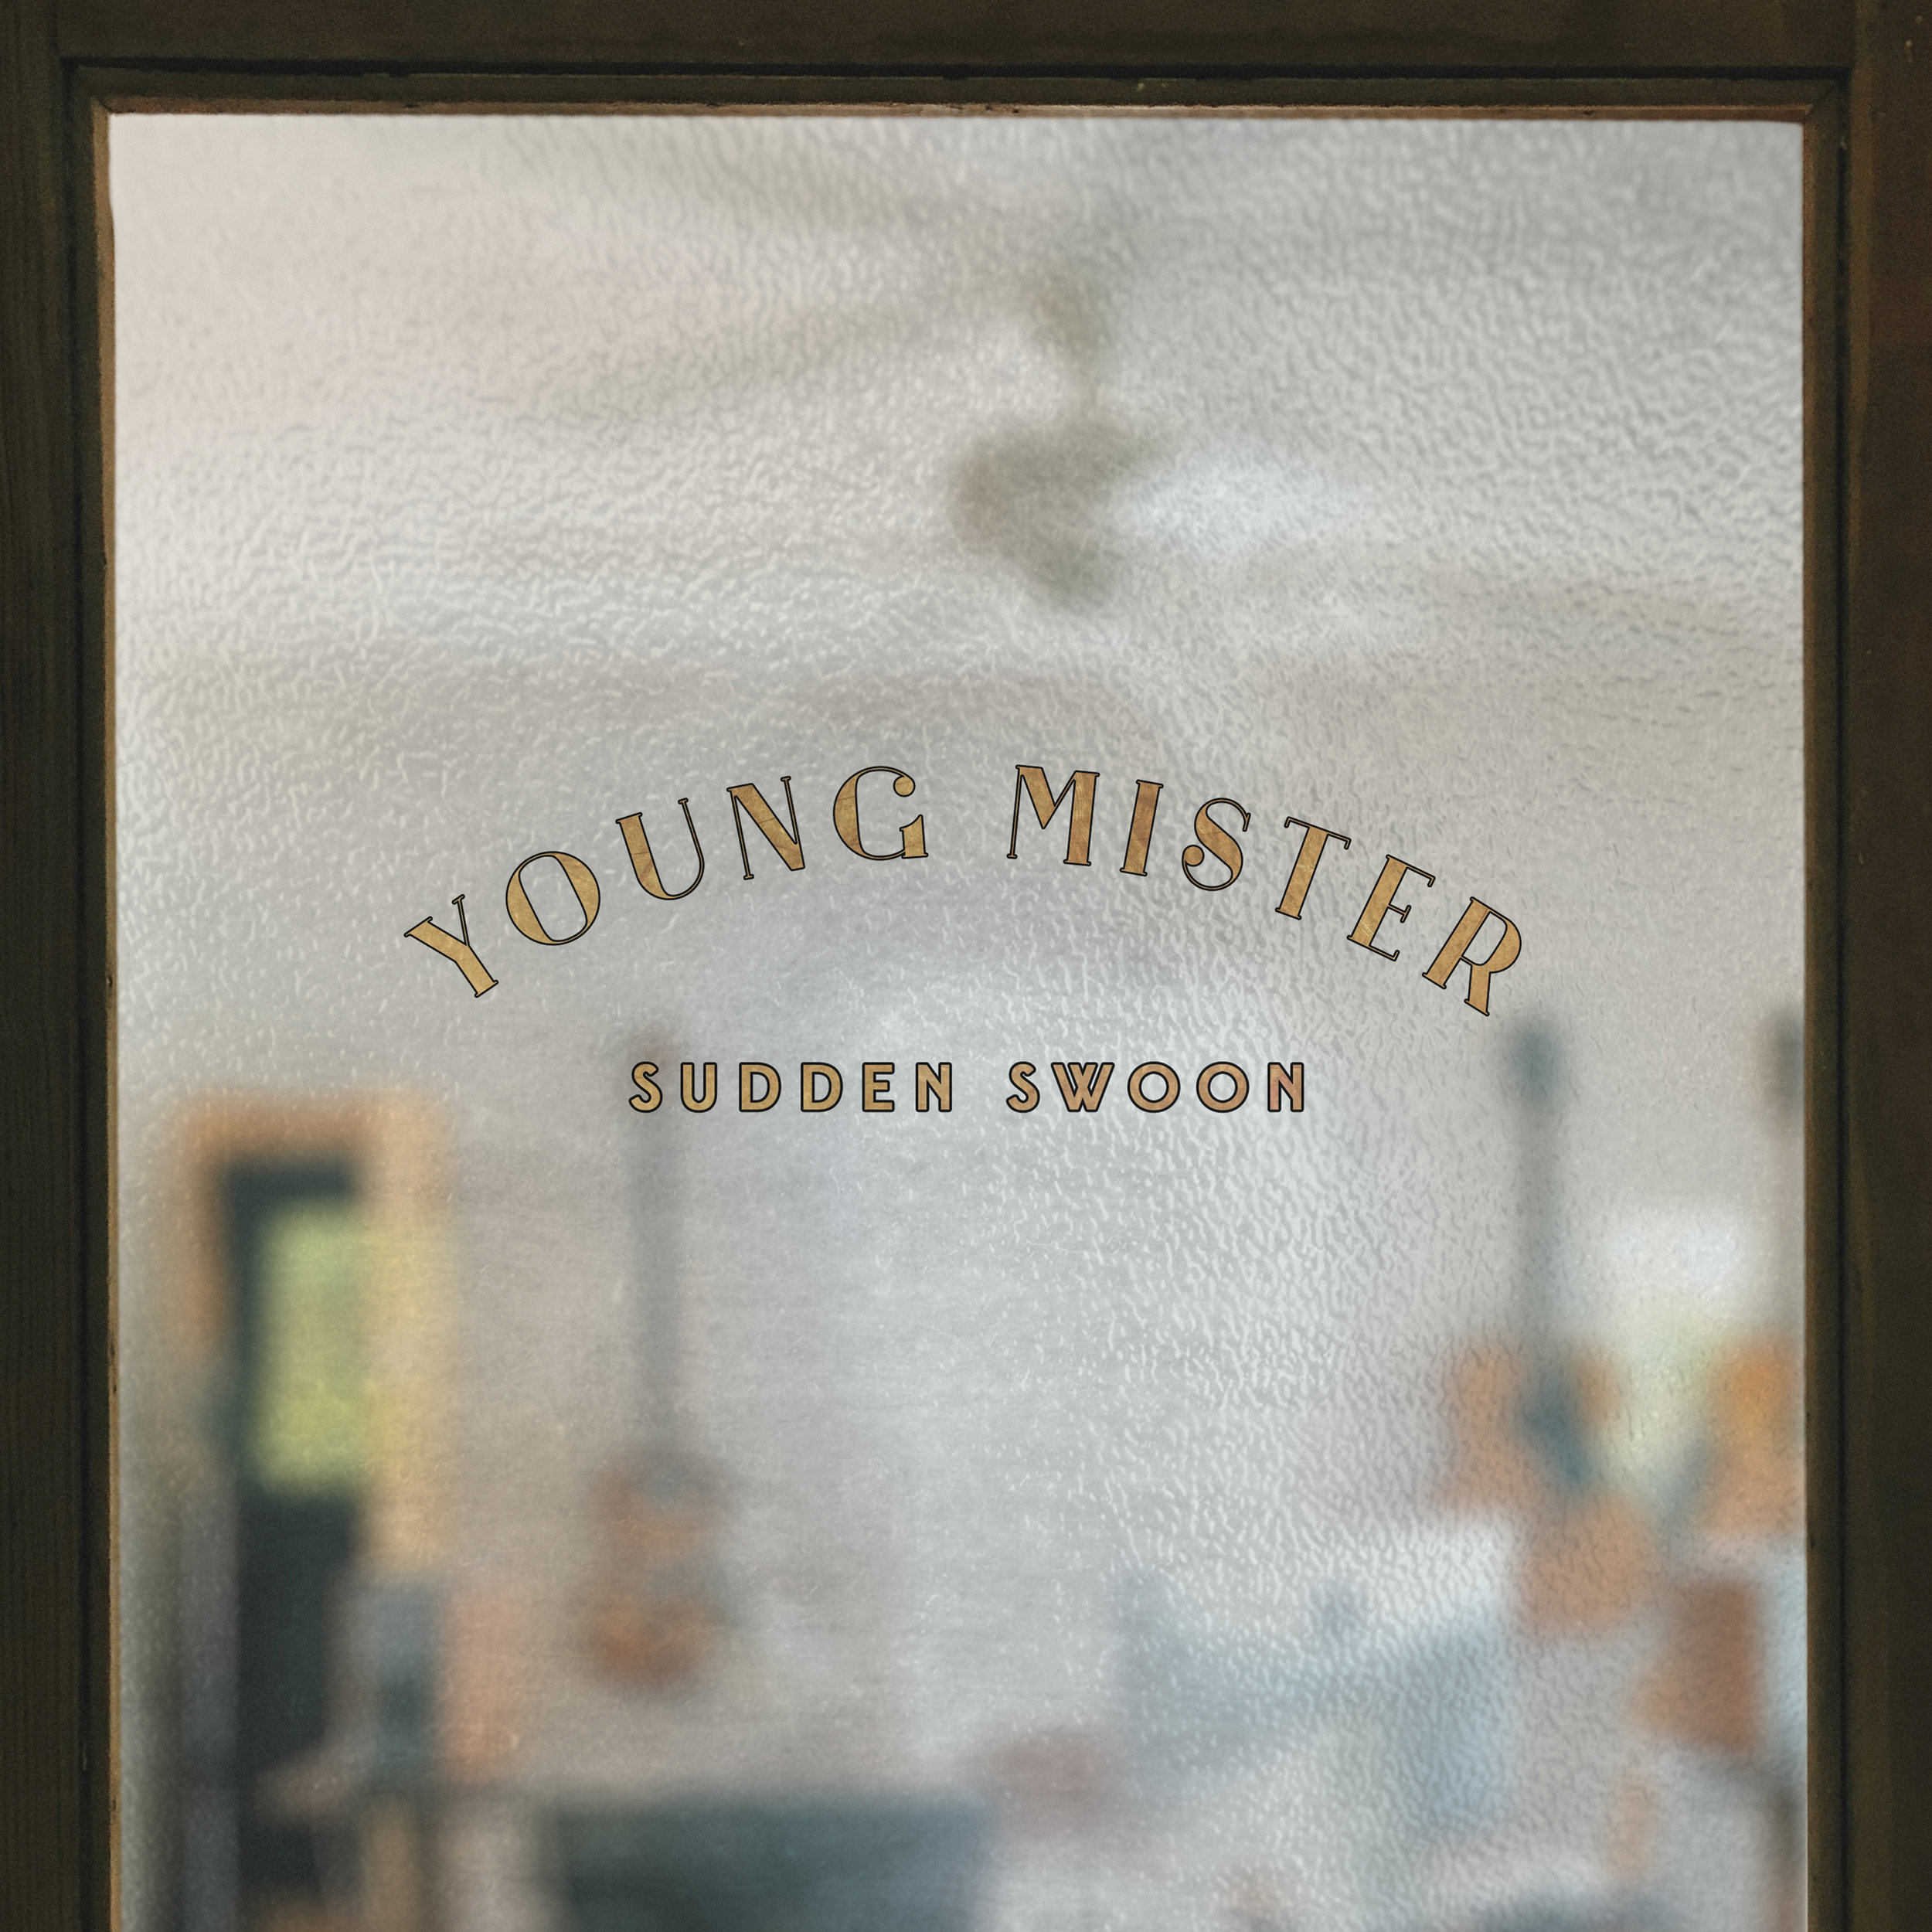 YoungMister-SuddenSwoon-AlbumCover.jpg